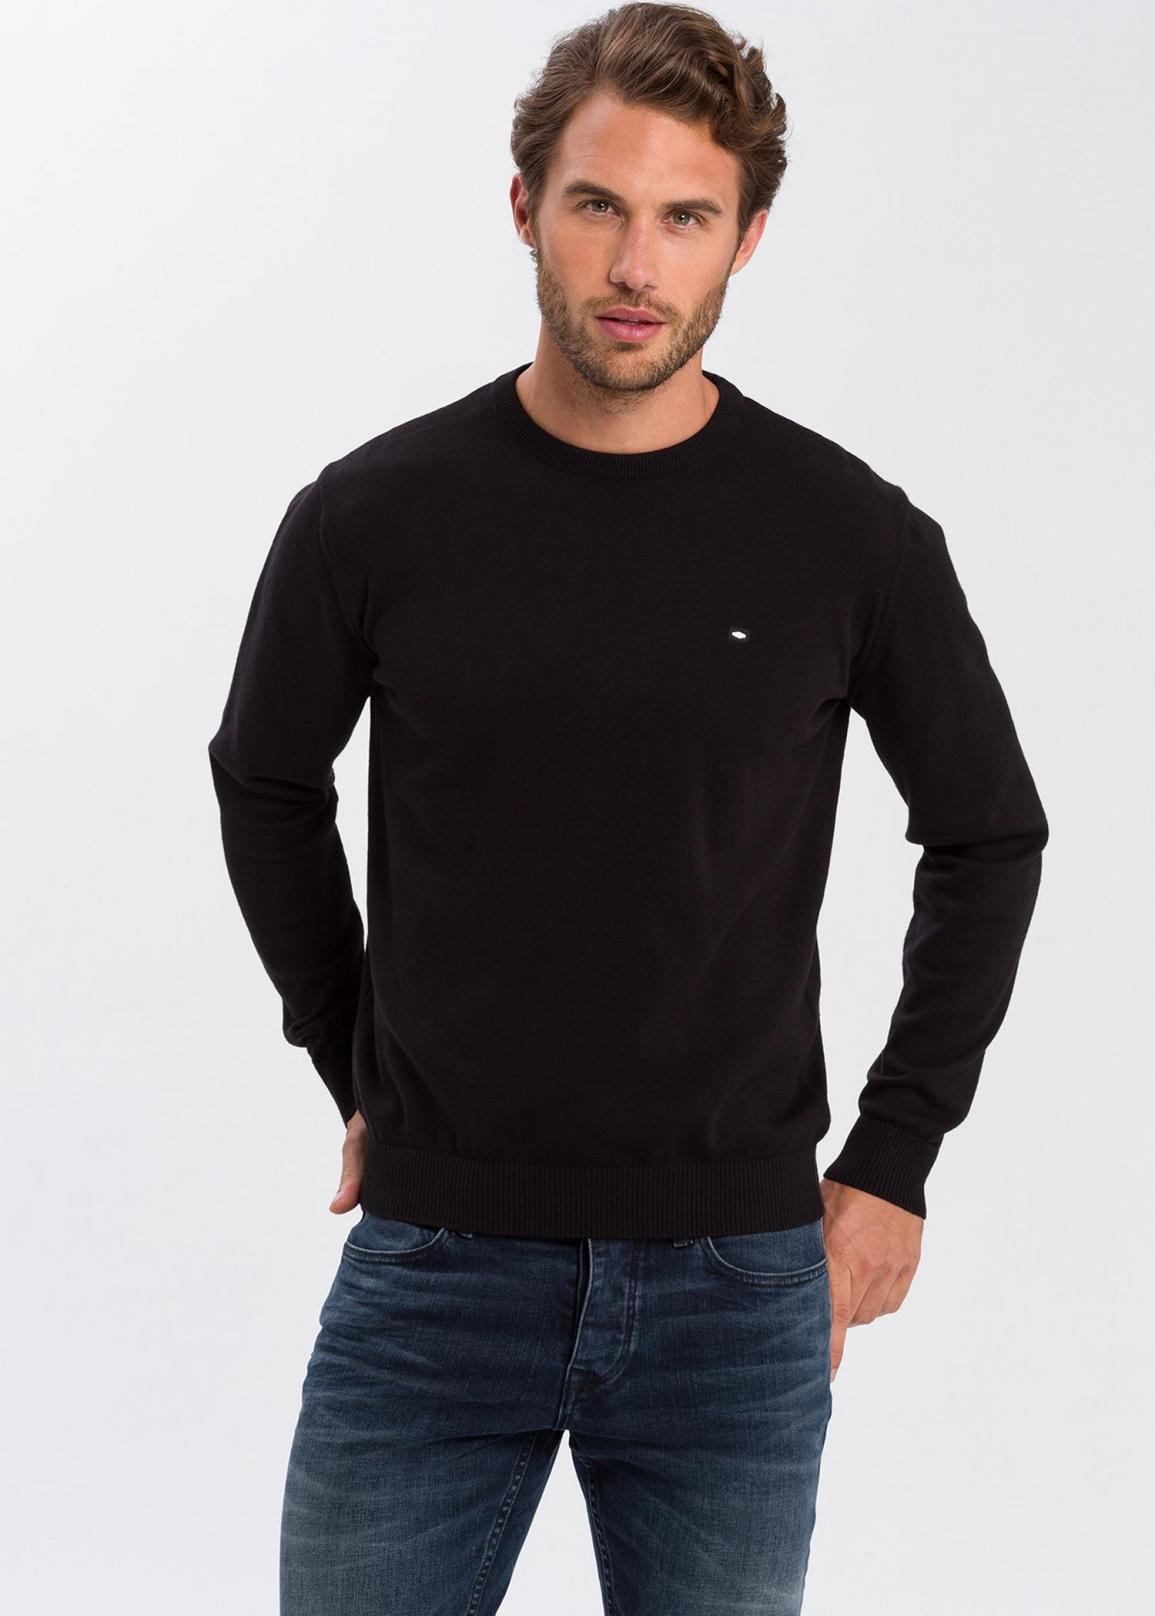 Cross Jeans® Jumper - Black